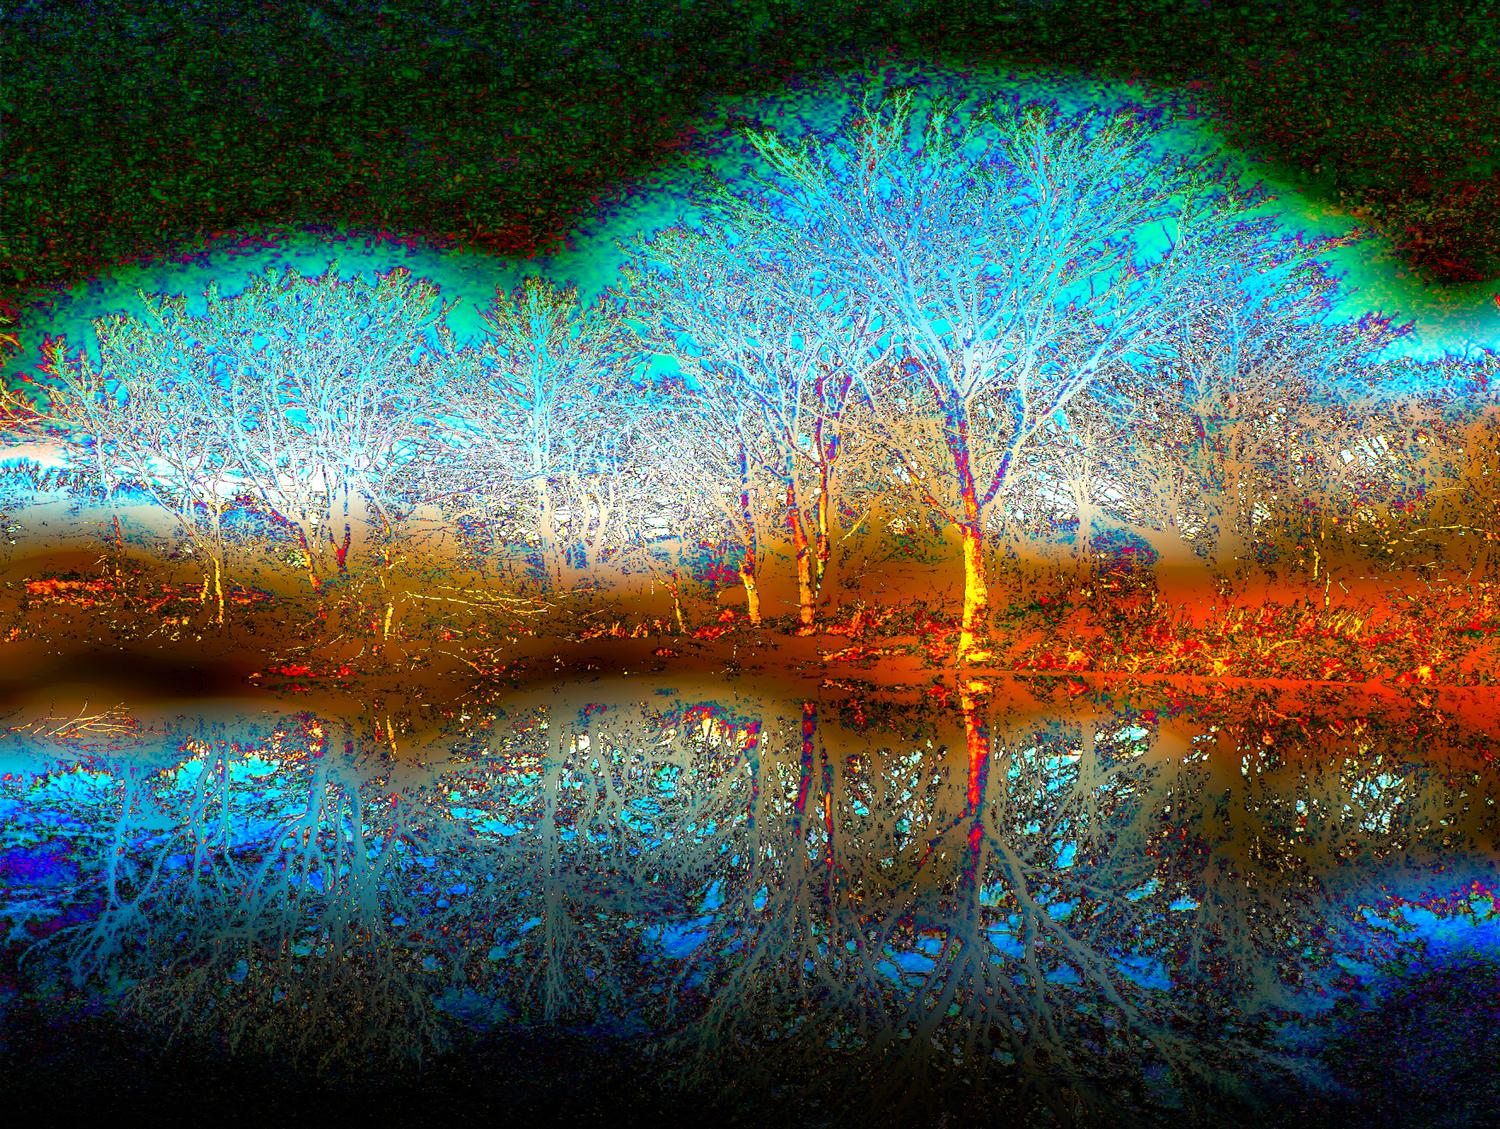 Glowing tree reflected in water #3 - - Can you really do that? - Ida Lee Park, Leesburg Virginia - Panasonic DMC-FZ5 - Tony Karp, design, art, photography, techno-impressionist, techno-impressionism, aerial photography , drone , drones , dji , mavic pro , video , 3D printing - Books -